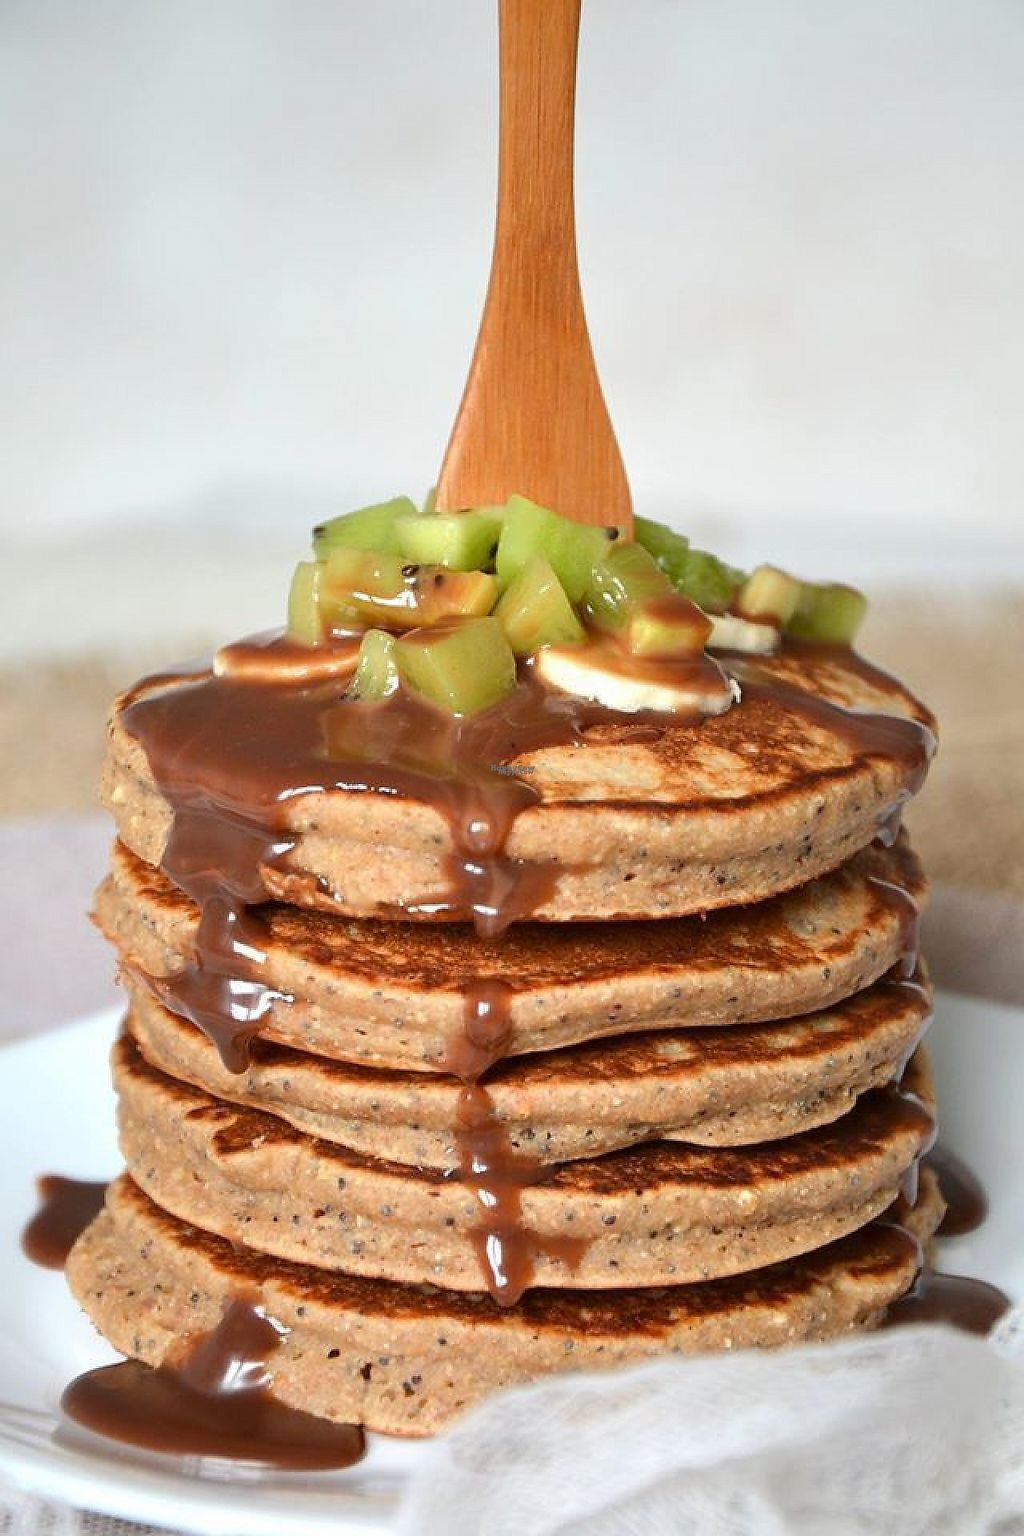 """Photo of La Vie Claire  by <a href=""""/members/profile/community"""">community</a> <br/>vegan pancakes  <br/> February 4, 2017  - <a href='/contact/abuse/image/72025/221878'>Report</a>"""